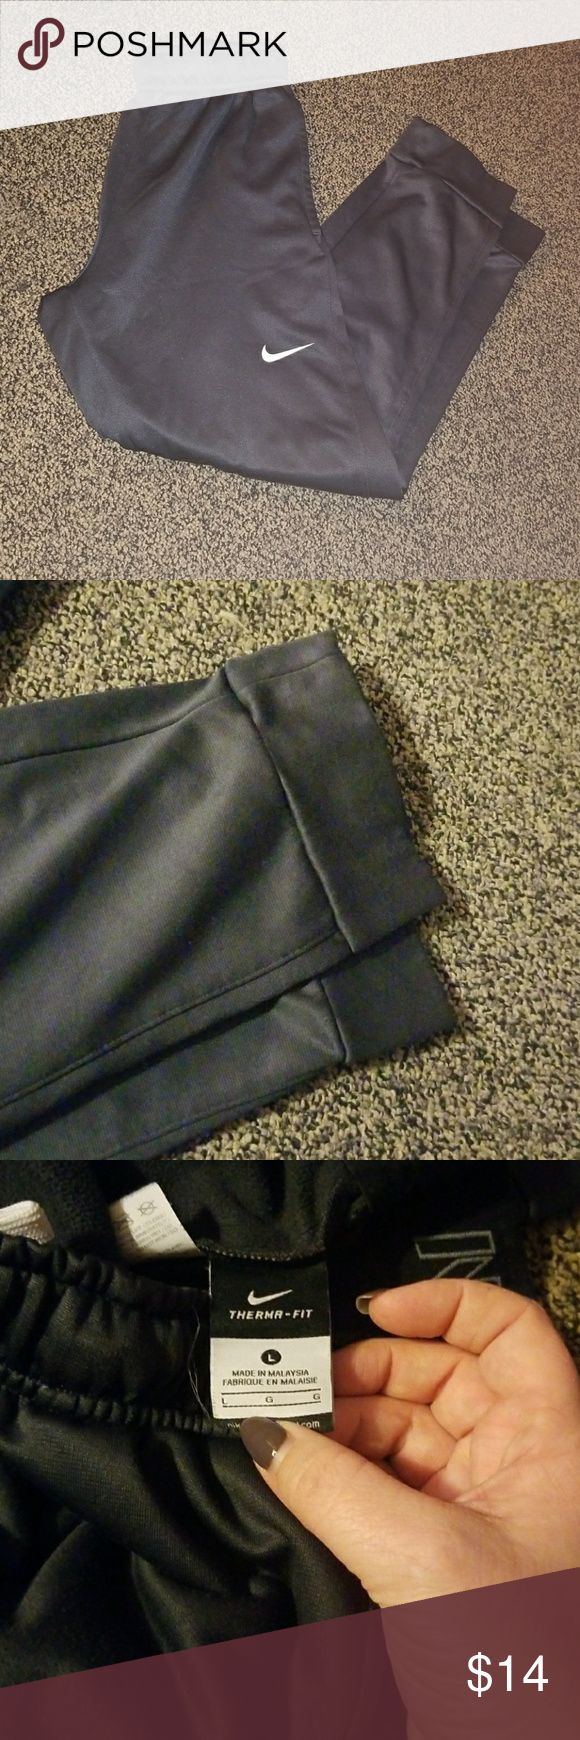 Nike joggers. Great condition!  Charcoal grey.  Boys size Large. Nike Bottoms Sweatpants & Joggers